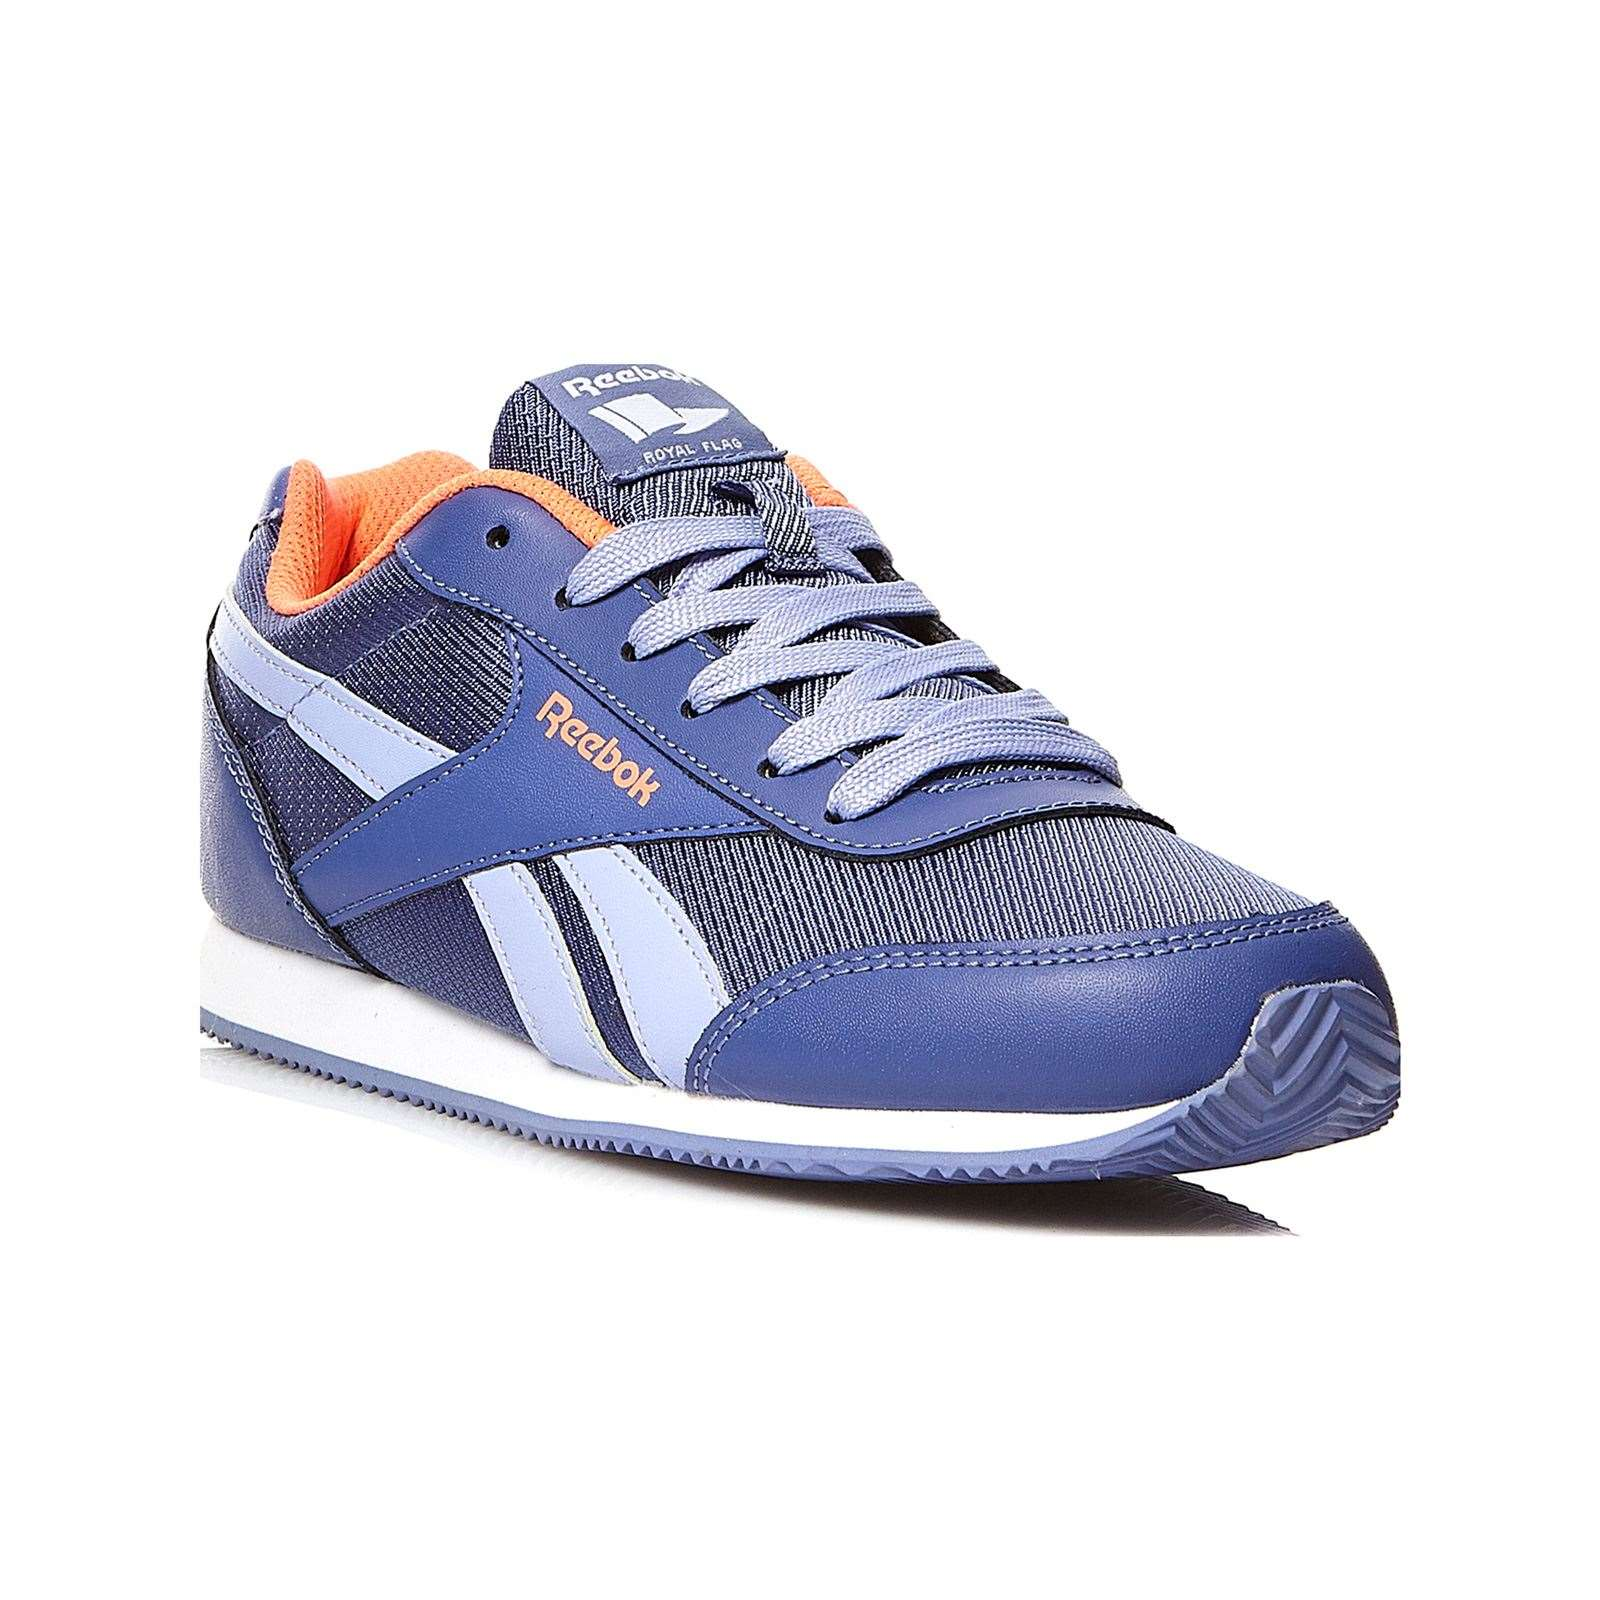 Performance Pelle Snackers In Reebok Bimateriale ViolaBrandalley 54ARjL